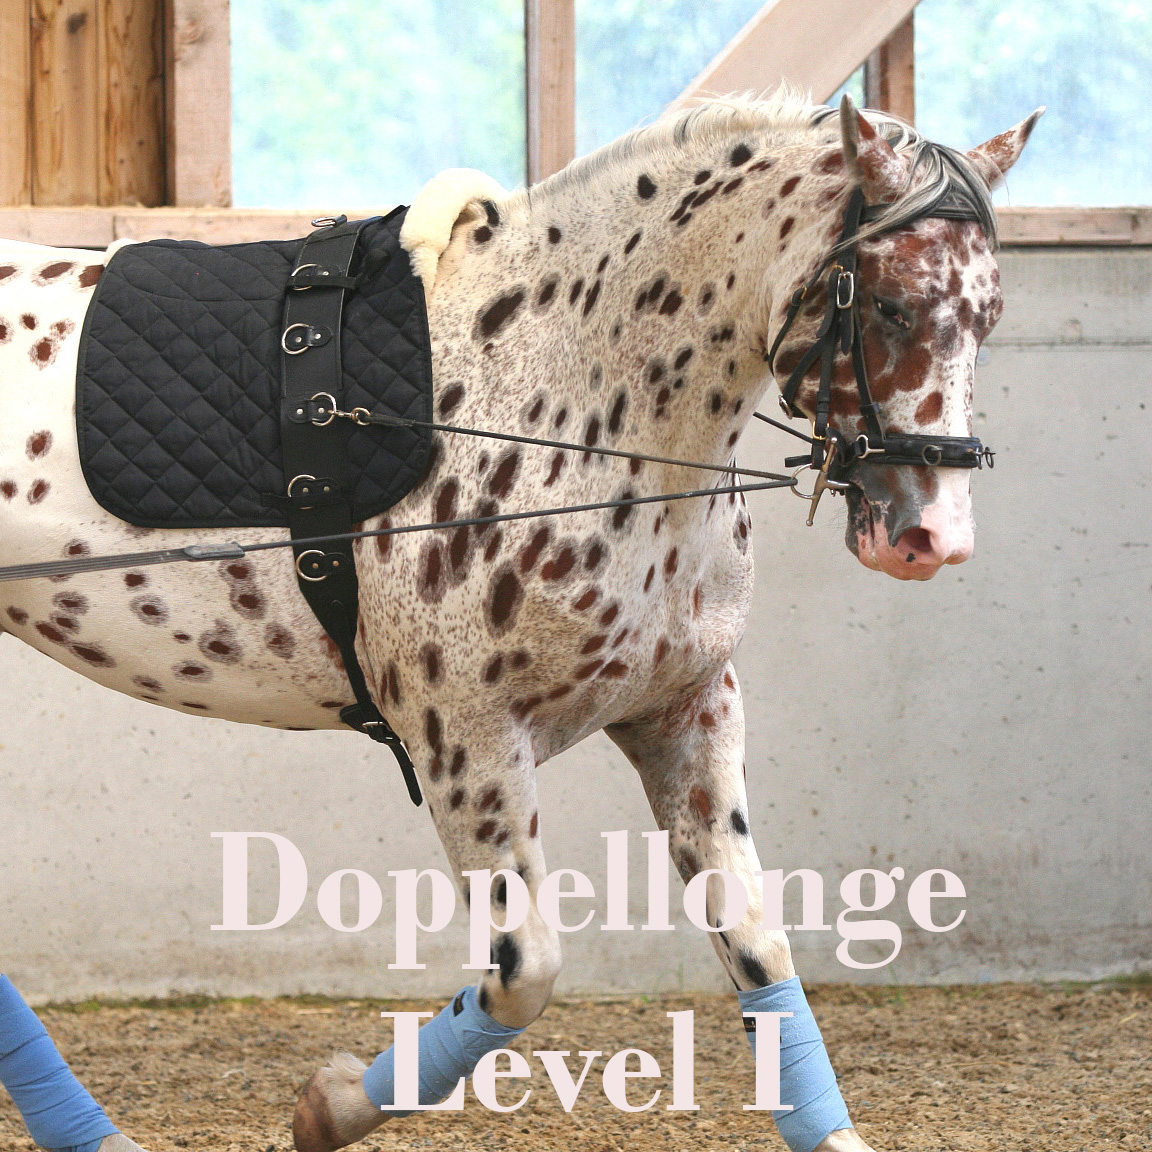 Doppelonge Level 1